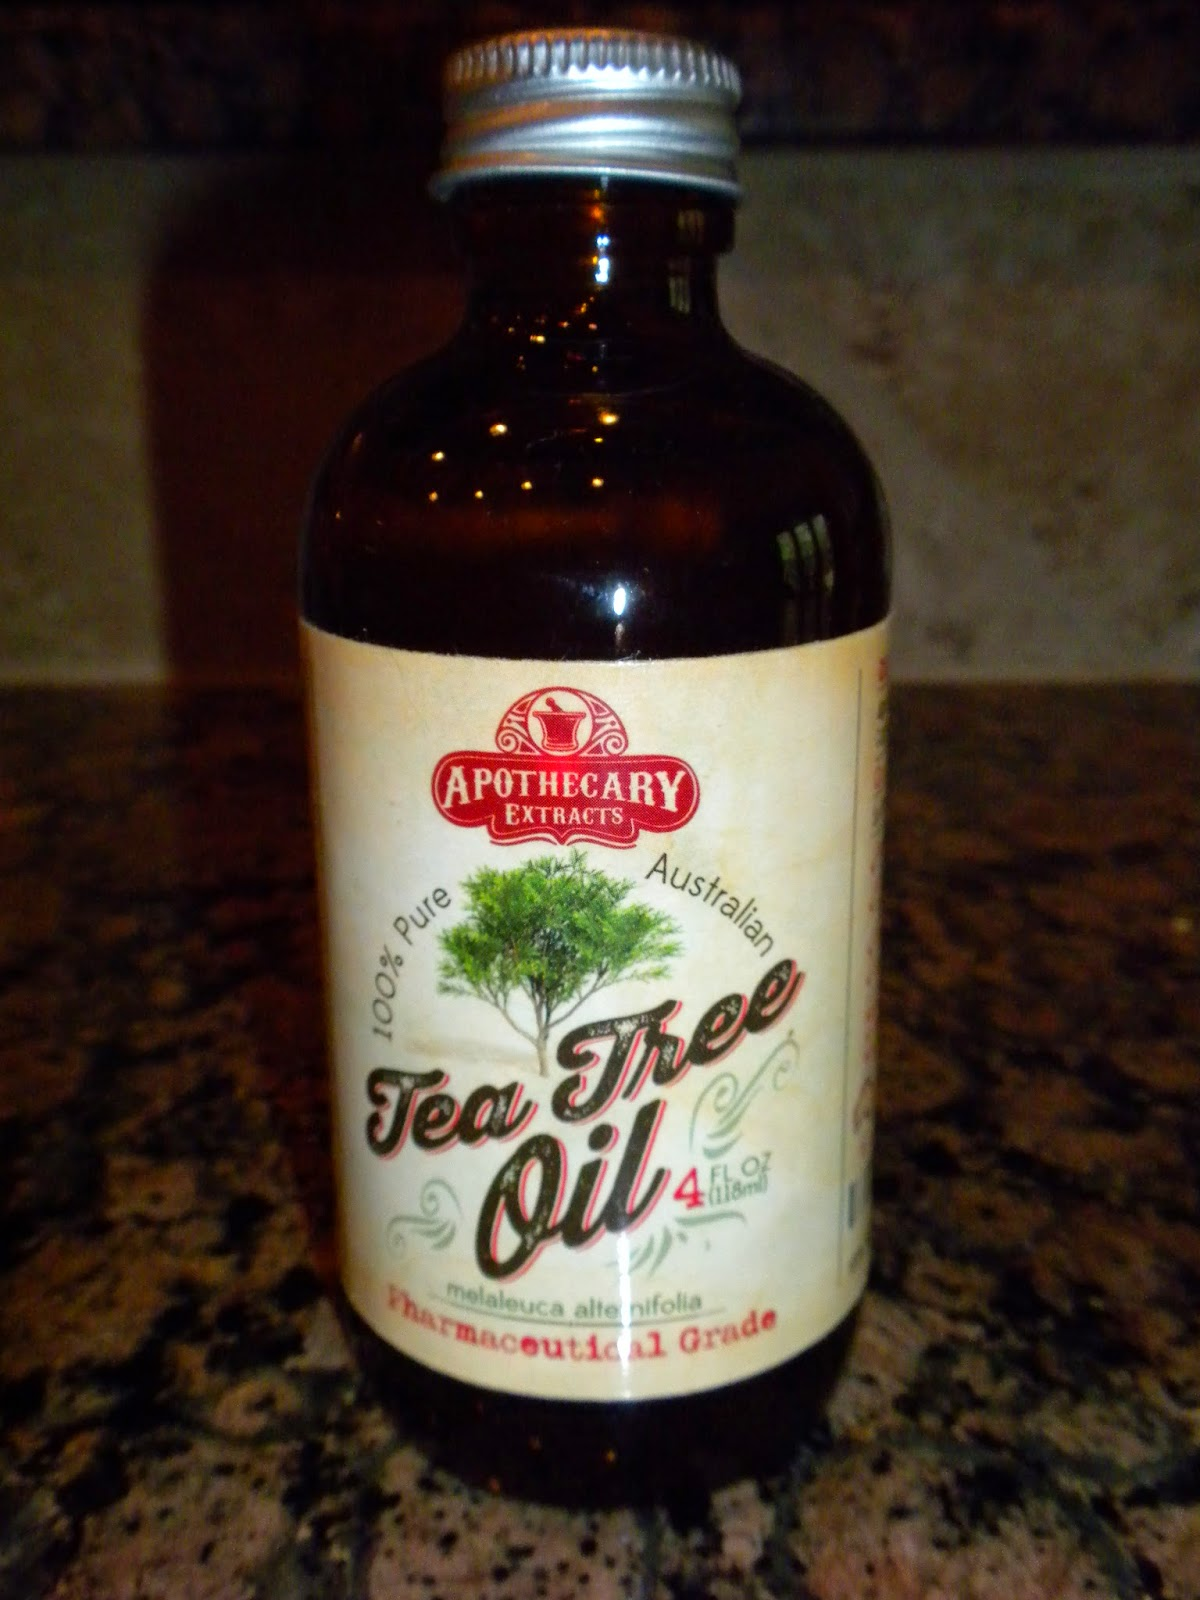 Apothecary Extracts Tea Tree Oil - Product Review